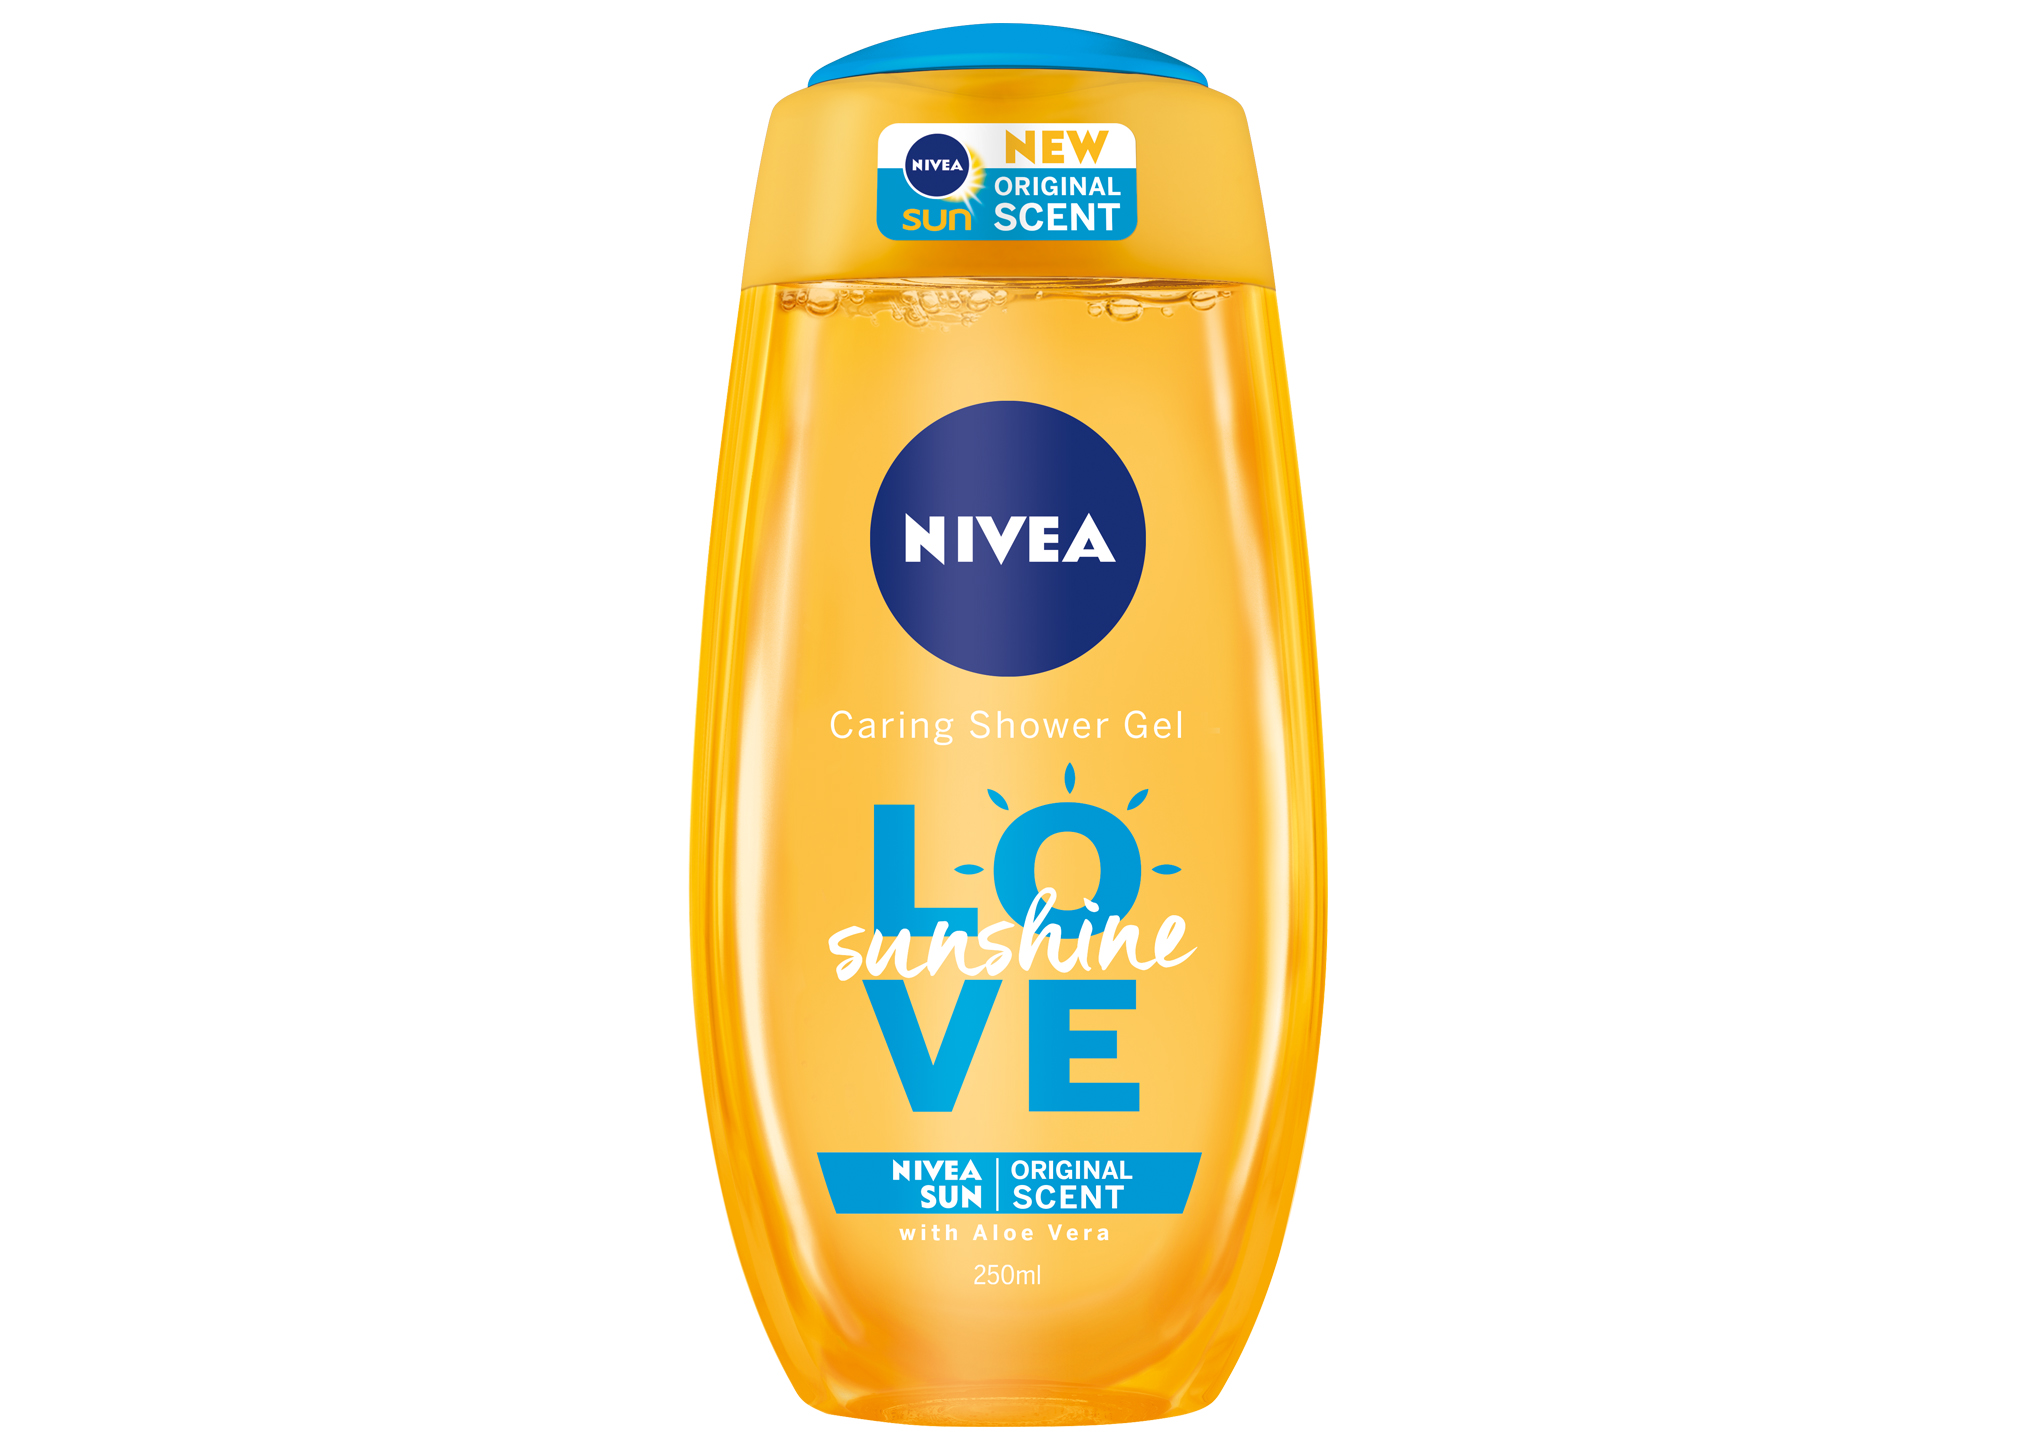 Nivea Sunshine Love Shower Gel